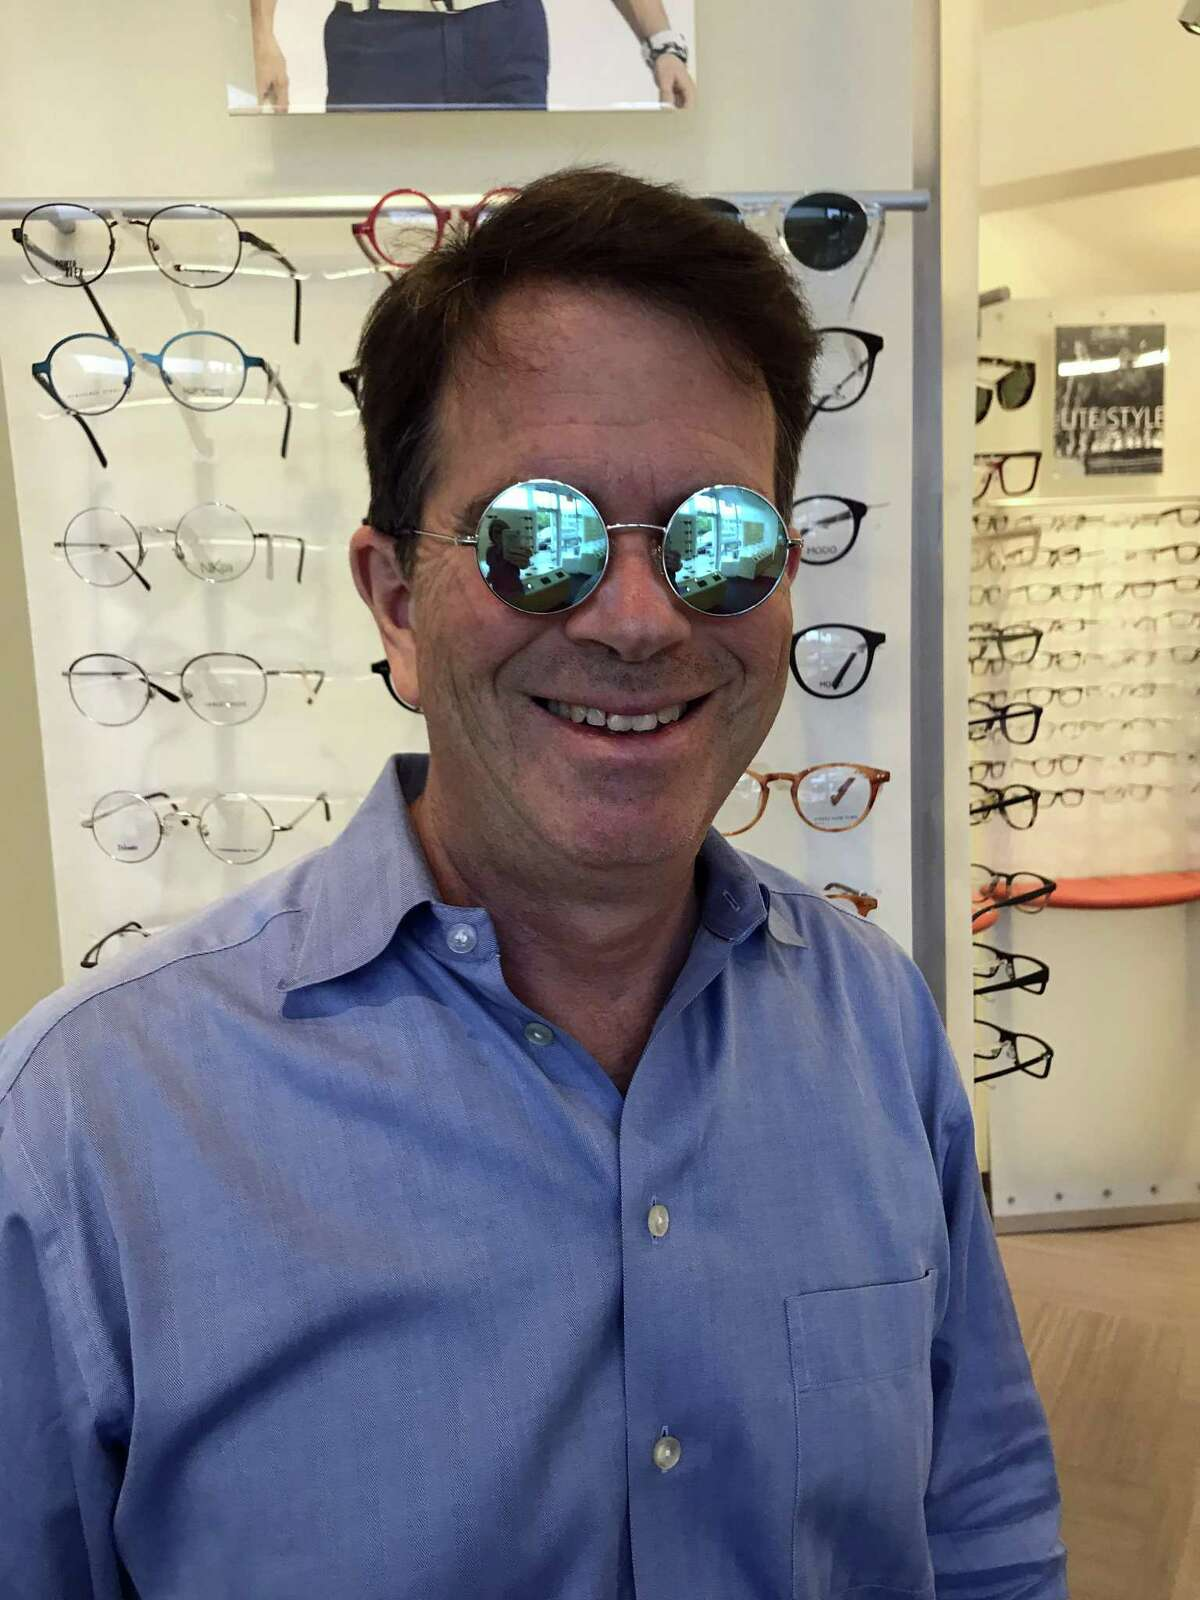 Mark Agnew in his new Pi Wear brand of eyeglasses. For every one pair of Pi Wair eyeglasses or sunglasses purchased, Eyeglass.com pays for one eye surgery in rural India